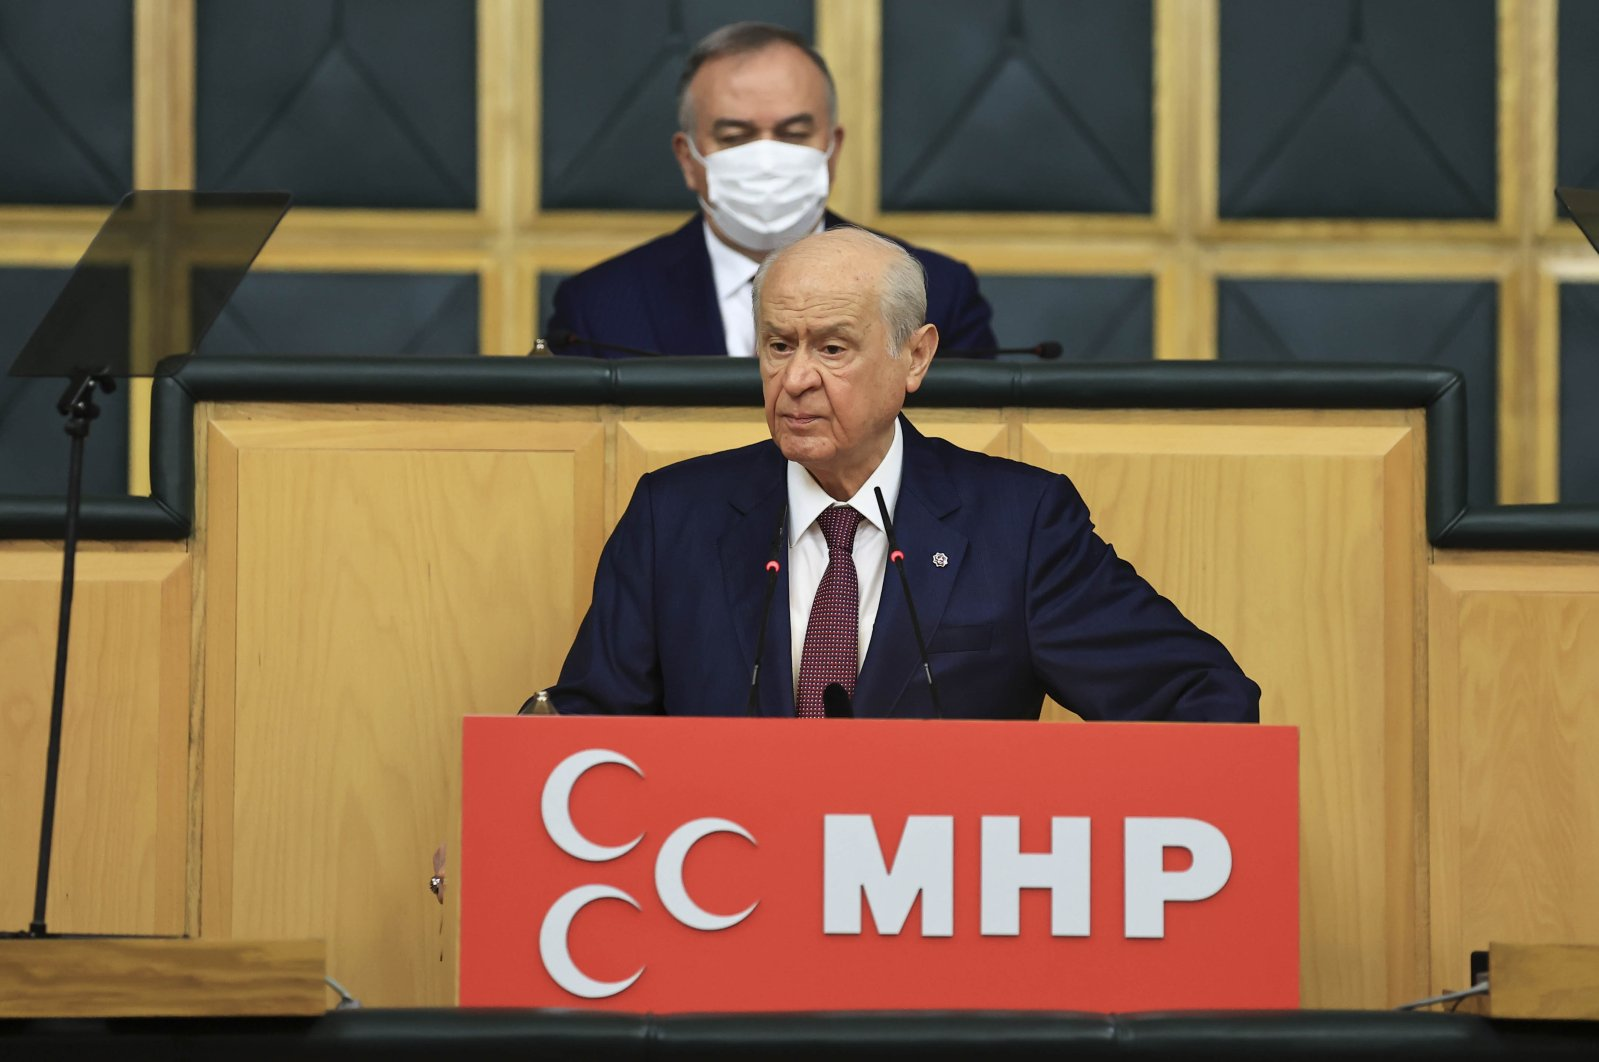 MHP Chairperson Devlet Bahçeli speaks at his party's parliamentary group meeting at the Turkish Parliament, Ankara, Turkey, May 18, 2021. (AA Photo)